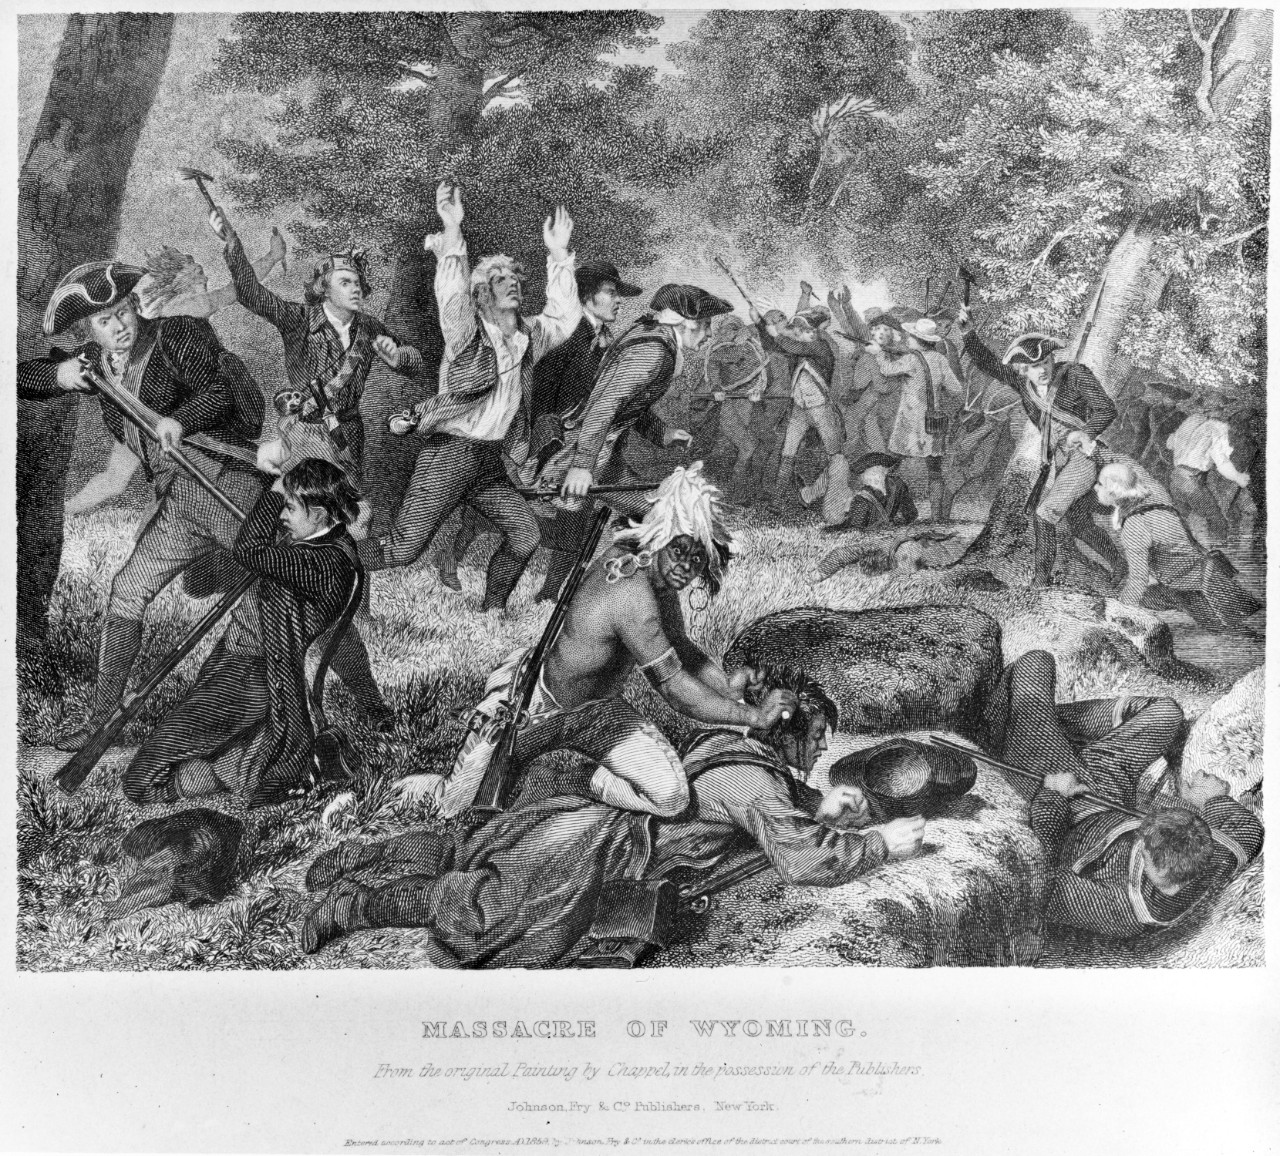 Massacre of Wyoming, 3-4 July 1778